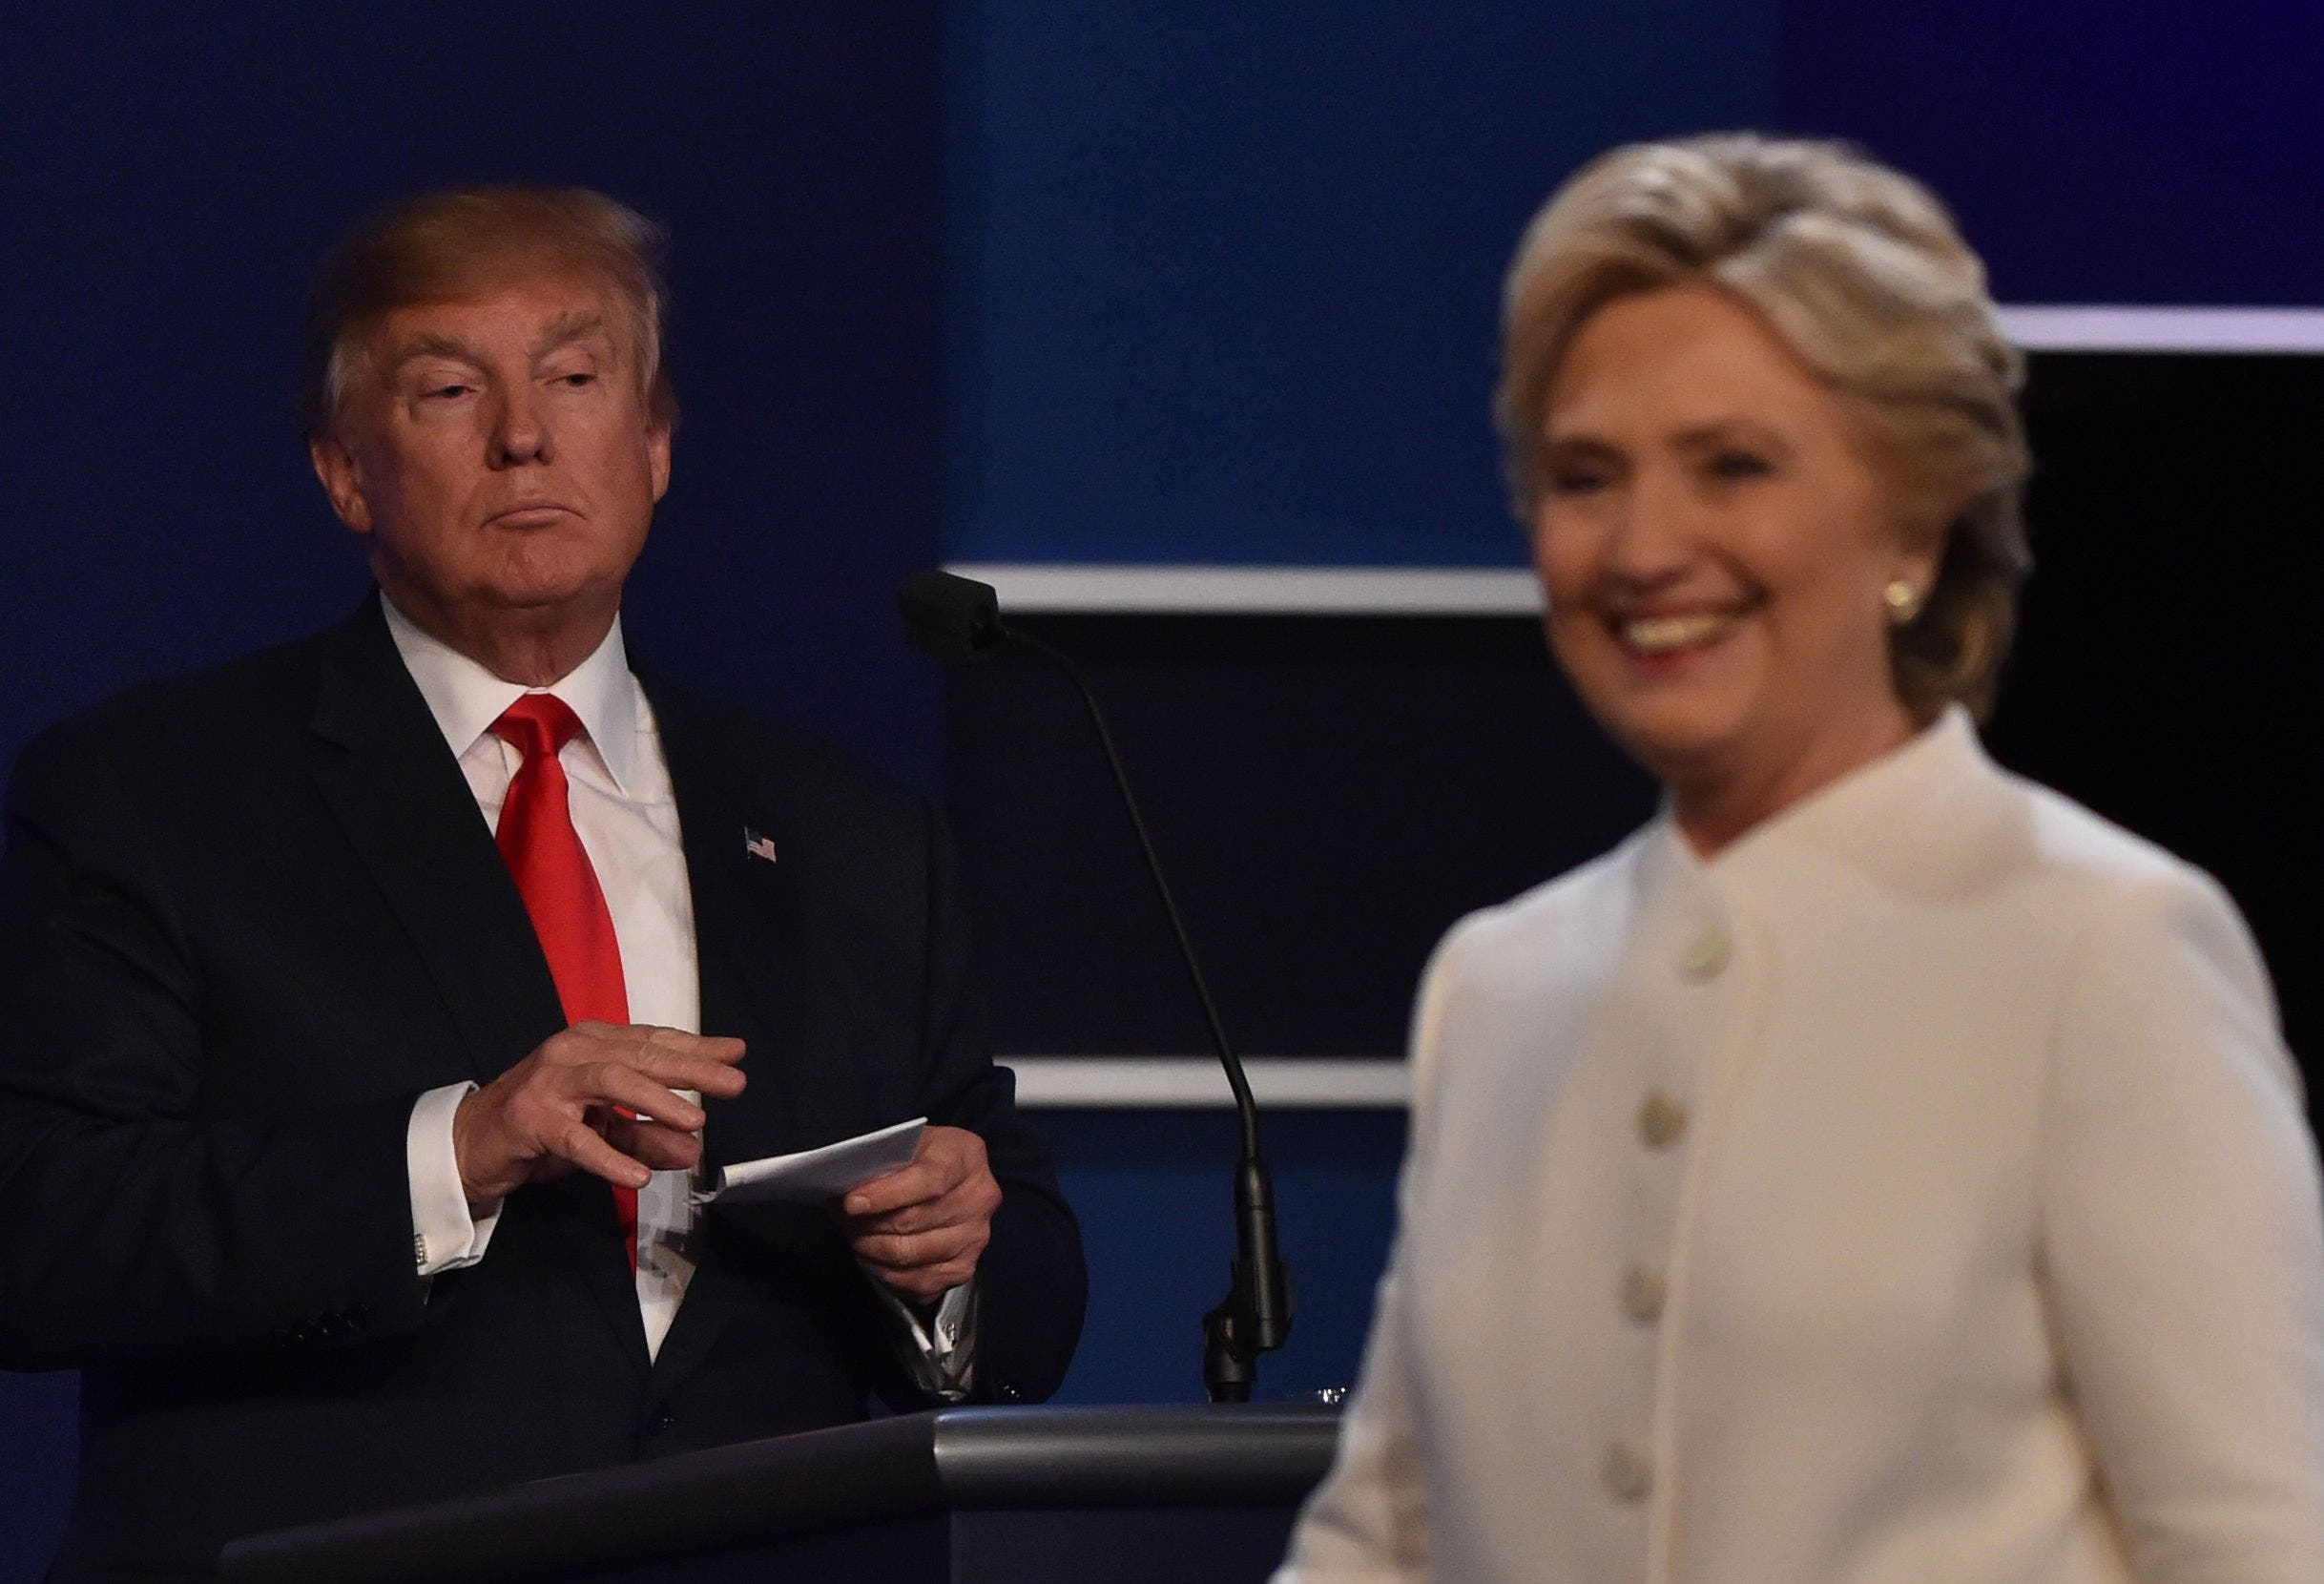 Final Presidential Debate Between Hillary Clinton and Donald Trump